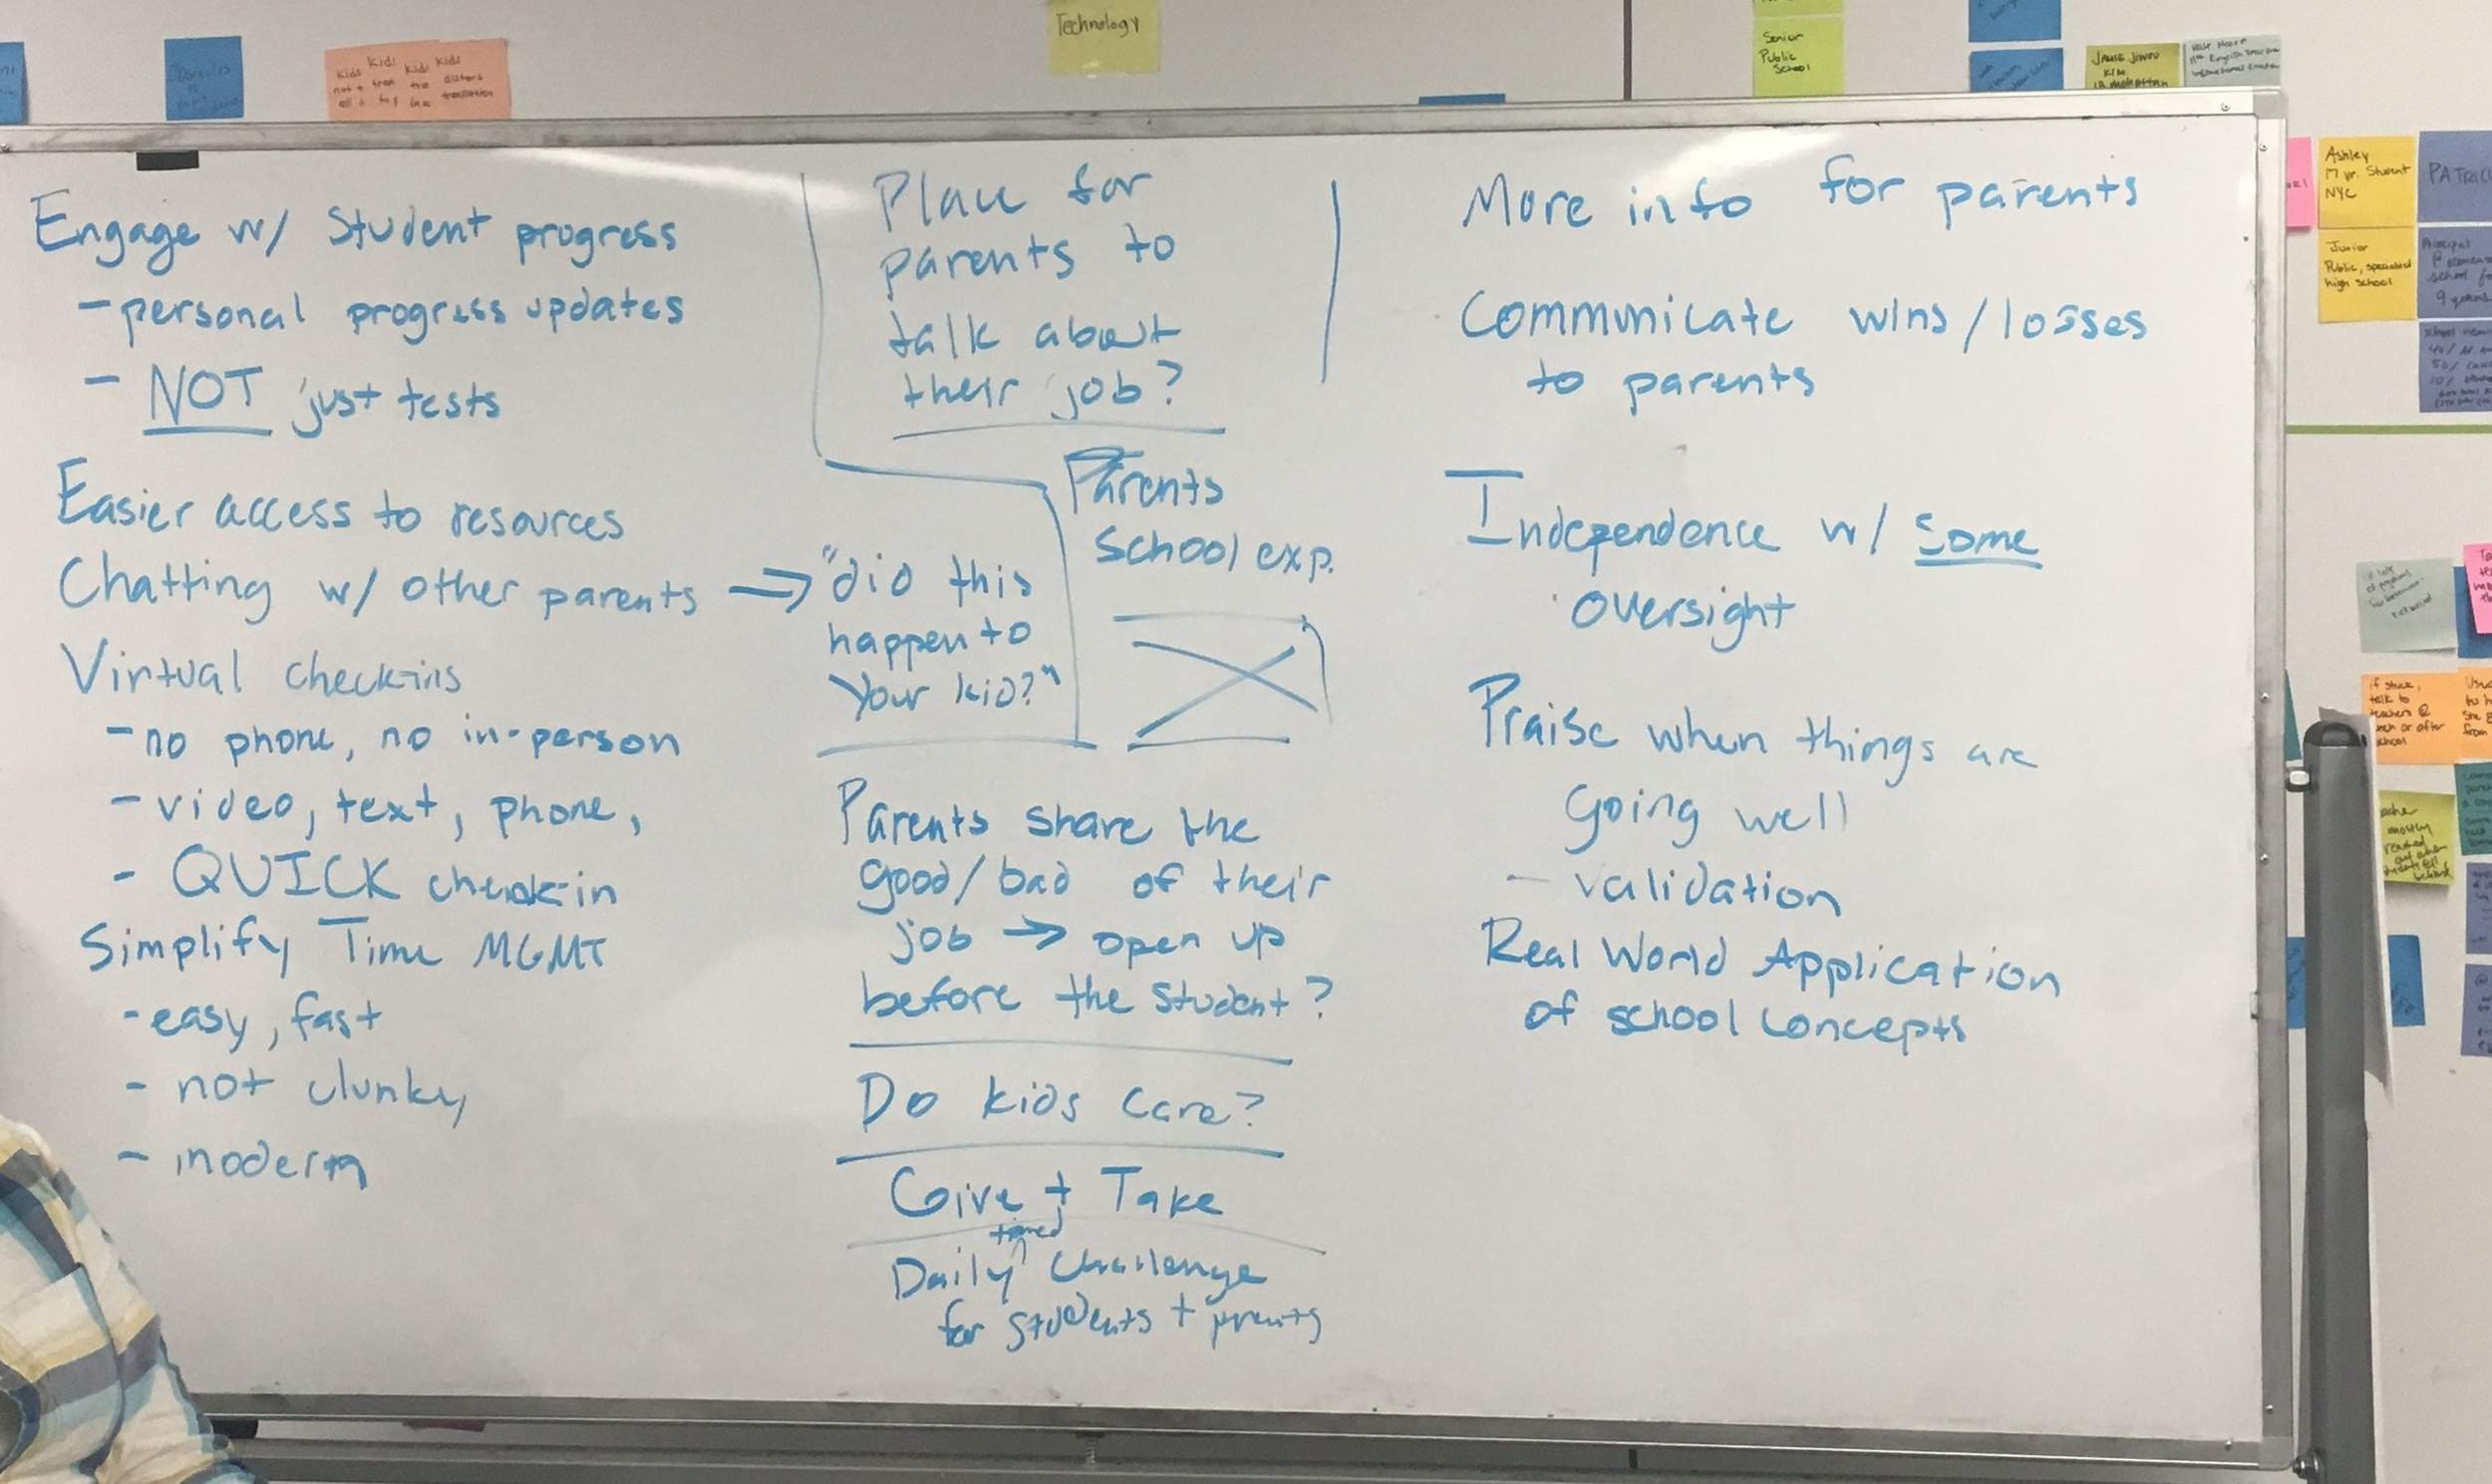 - We needed to figure out both good and bad ways to get the solution. We decided to do a few whiteboard exercises to discover directions for inspiration.